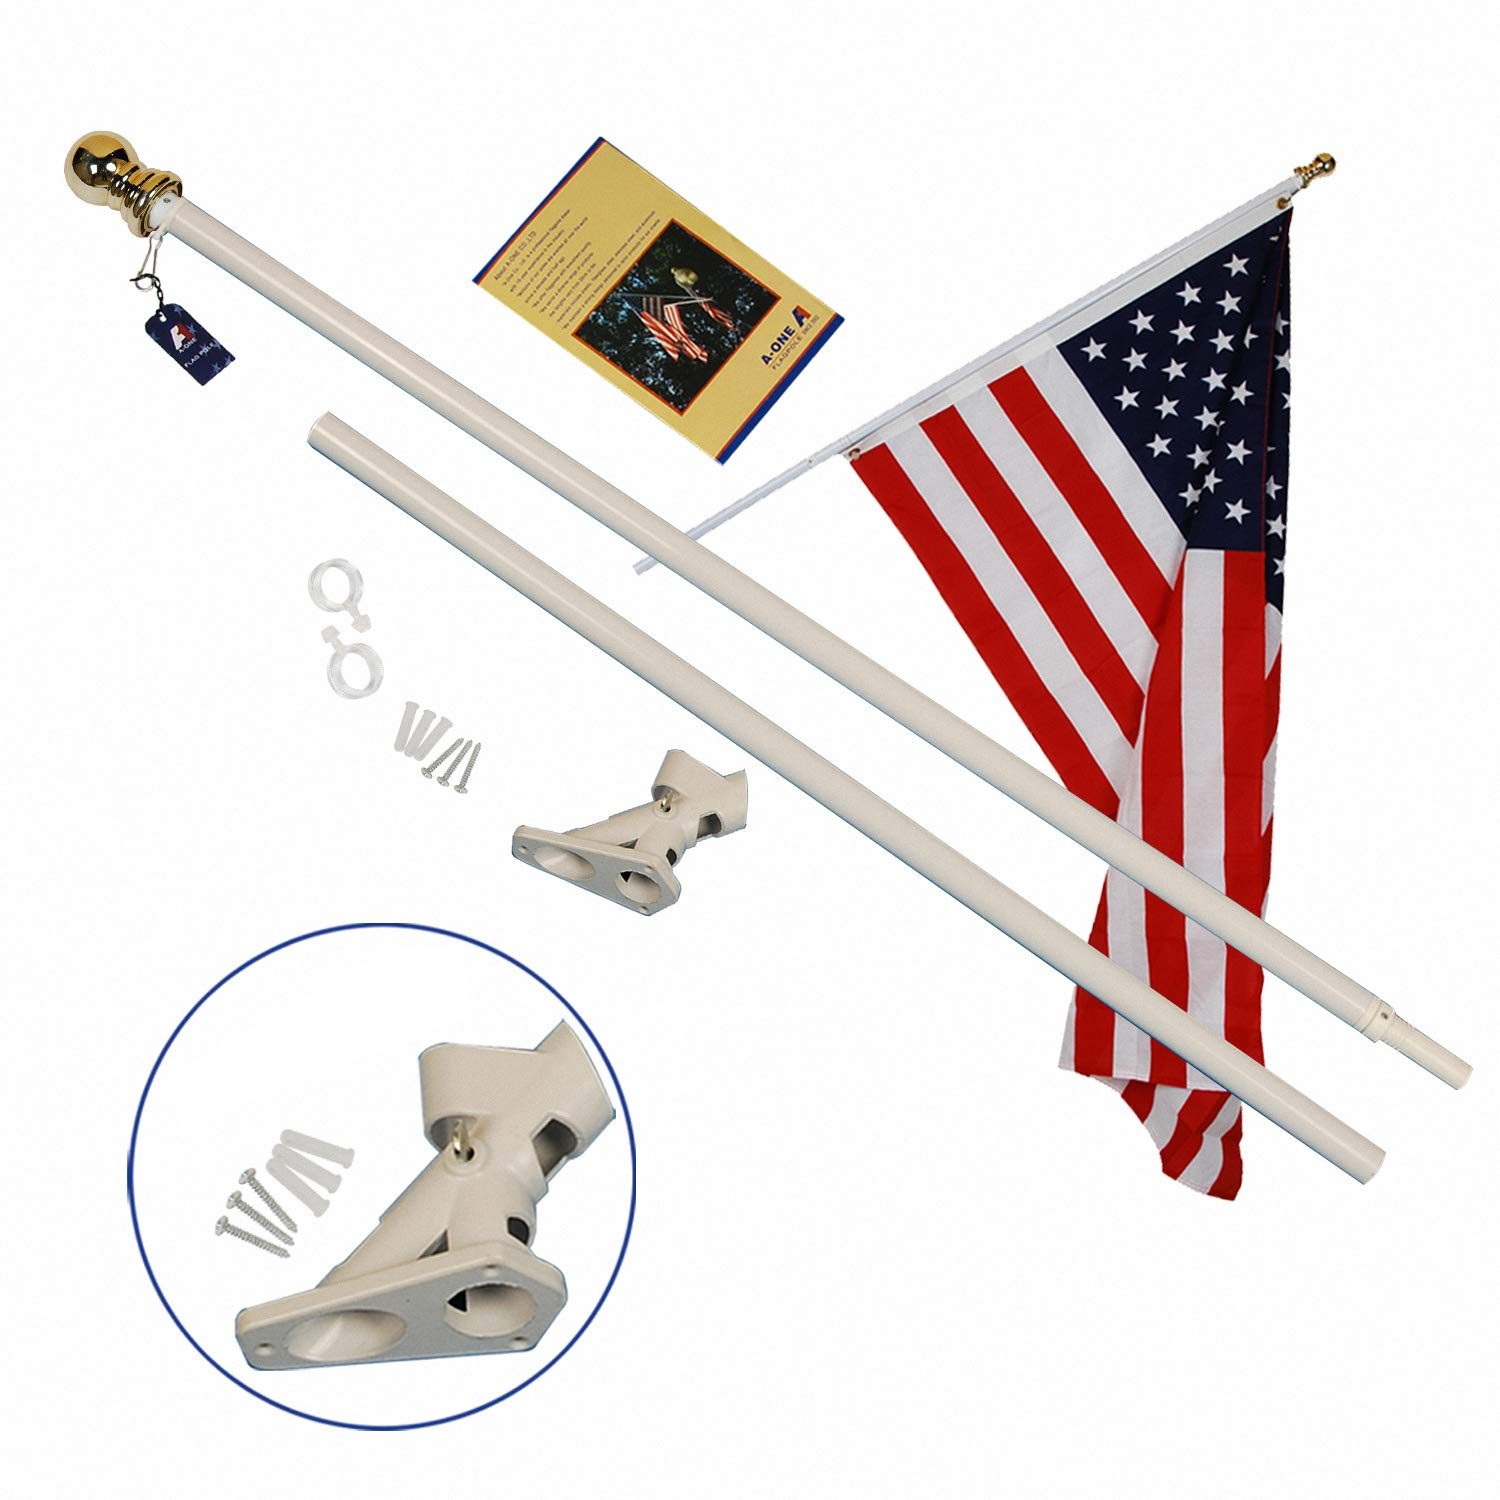 A-One 6Ft Tangle Free Spinning Flag Pole, Deluxe Aluminum American US FlagPole Kit with Stainless Steel Rust Prevention Clip and Free Bracket for Outdoor Residential or Commercial Wall Mount, White